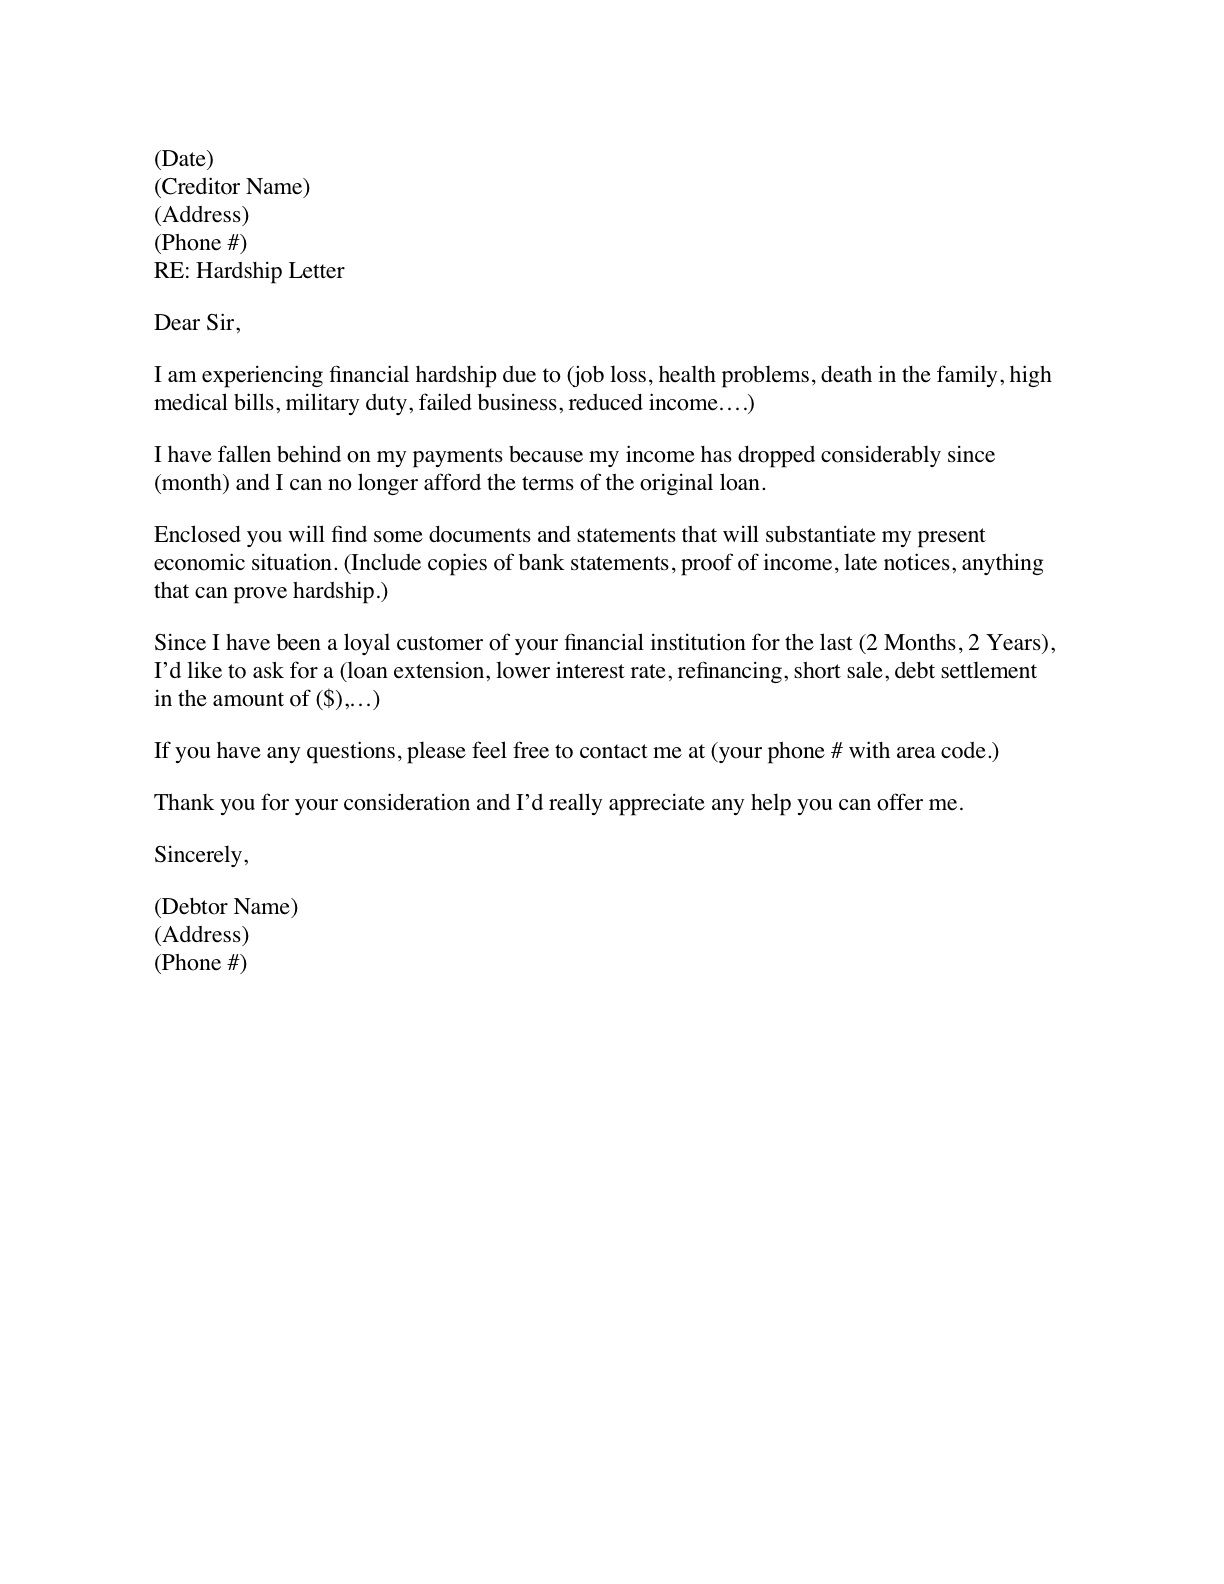 Financial Hardship Letter Template – Financial Hardship Letter